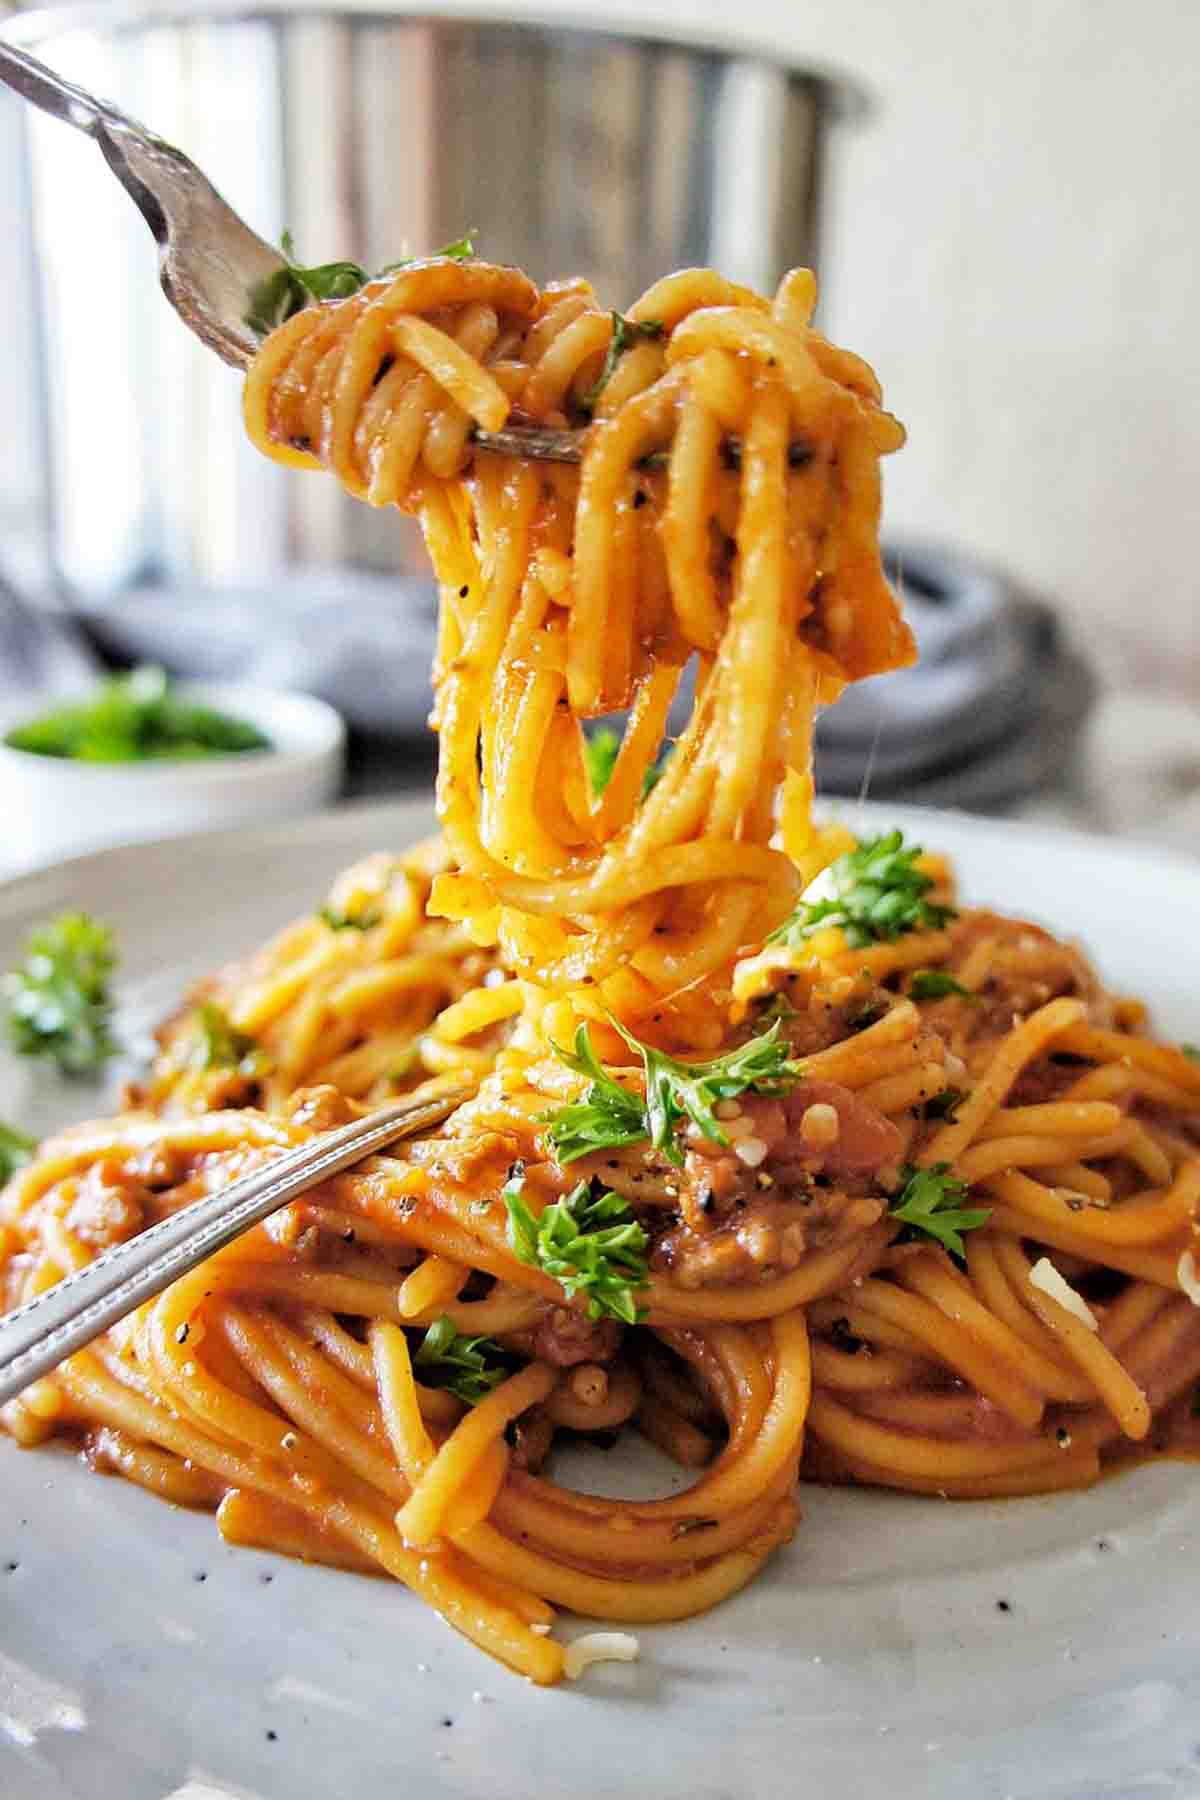 Fork twirled above a plate of spaghetti bolognese